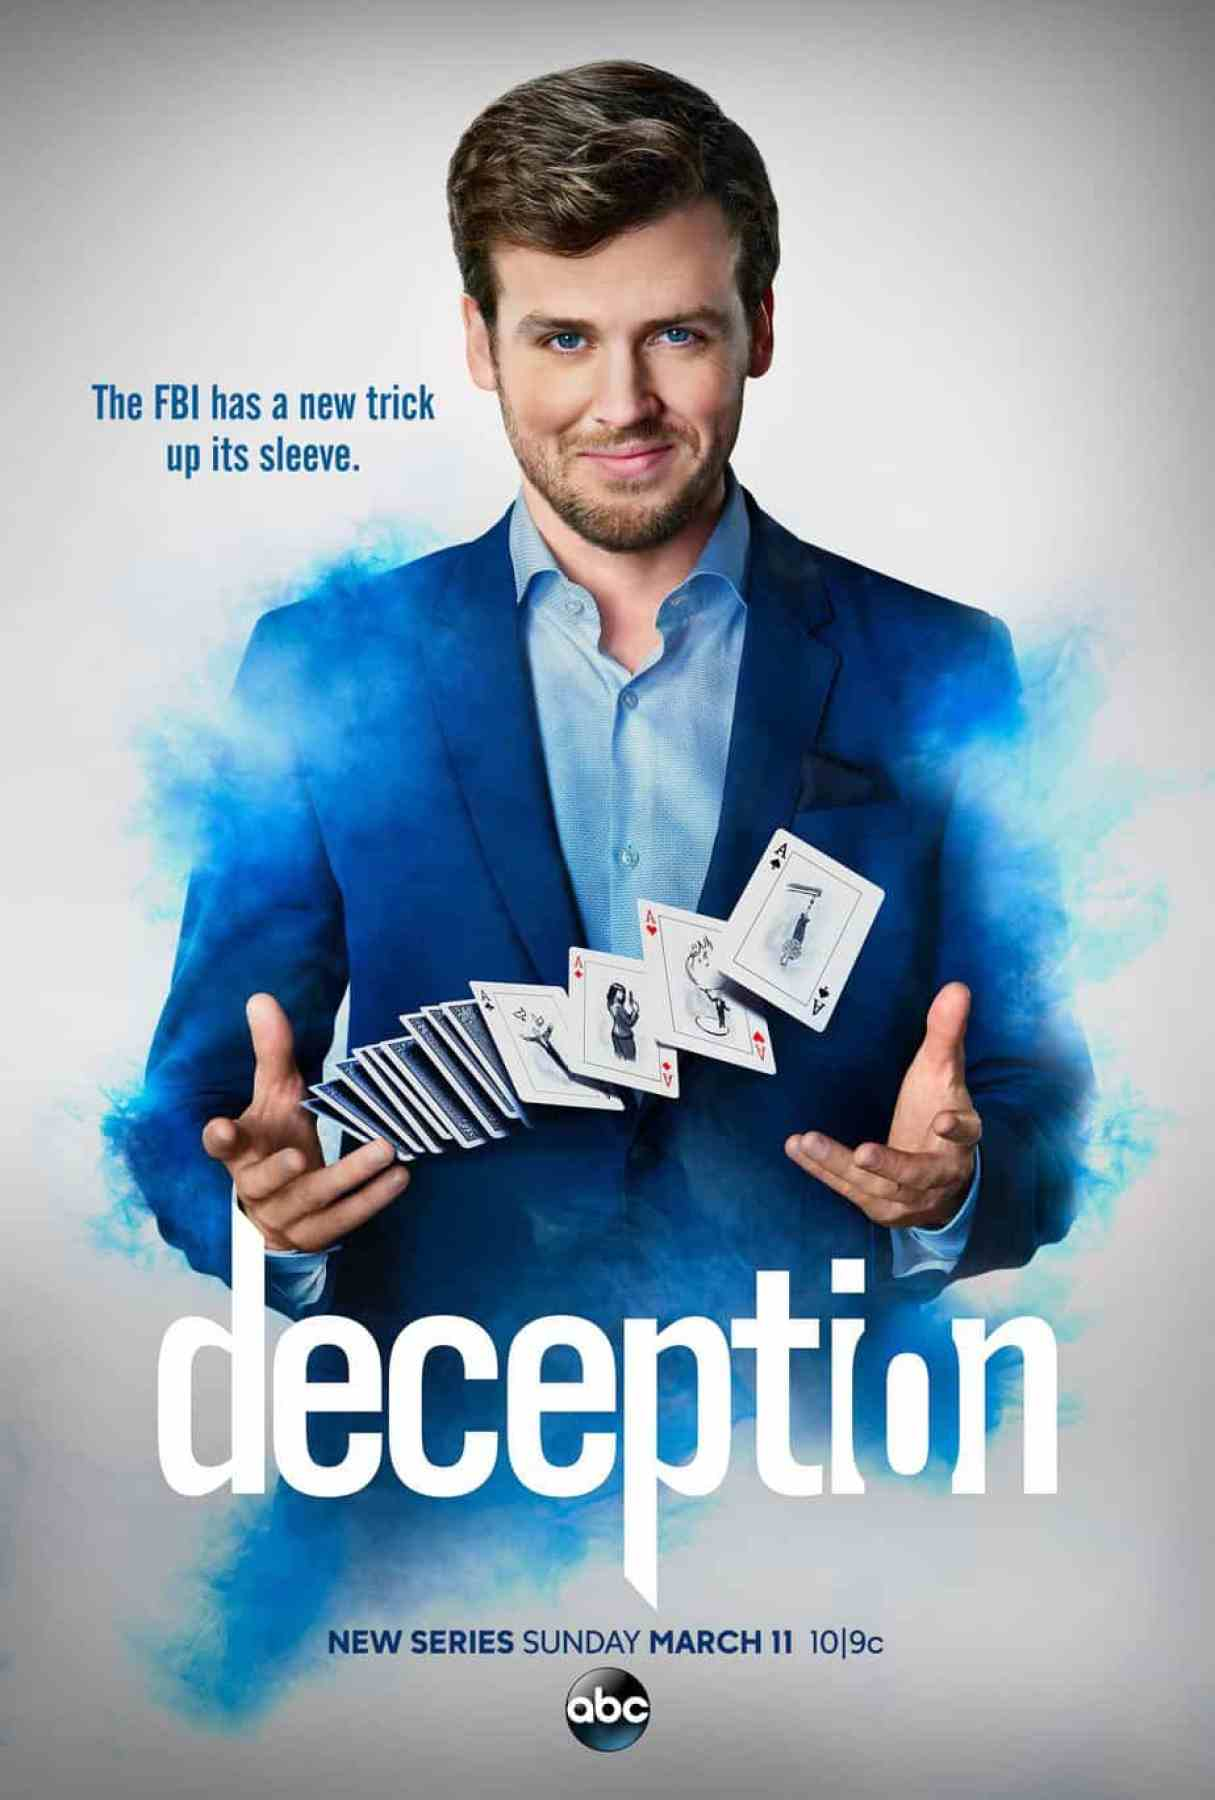 ABC TV's Deception